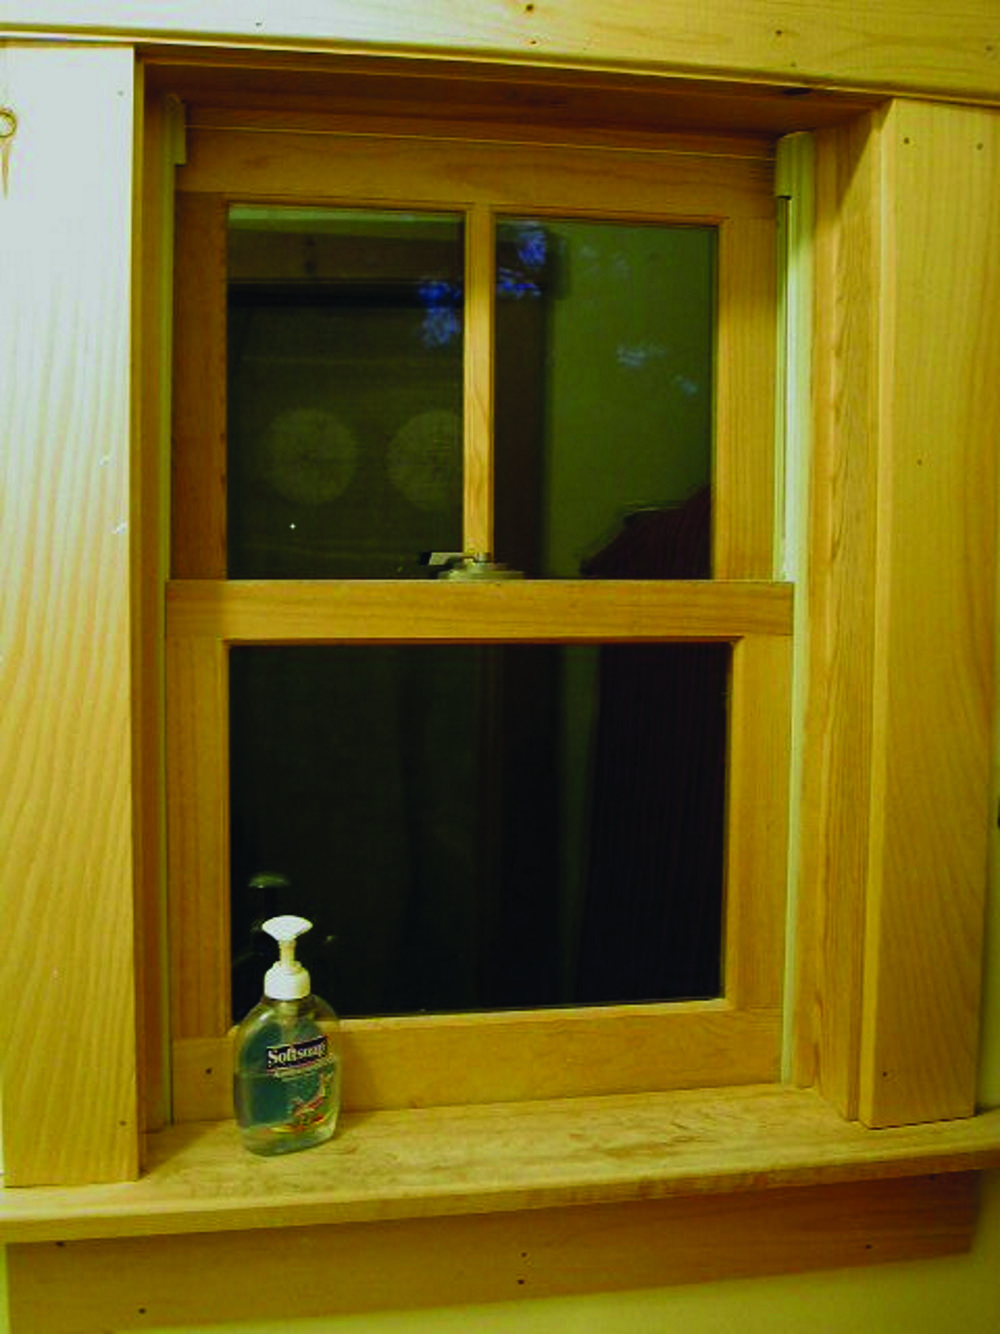 Window before insert is installed.